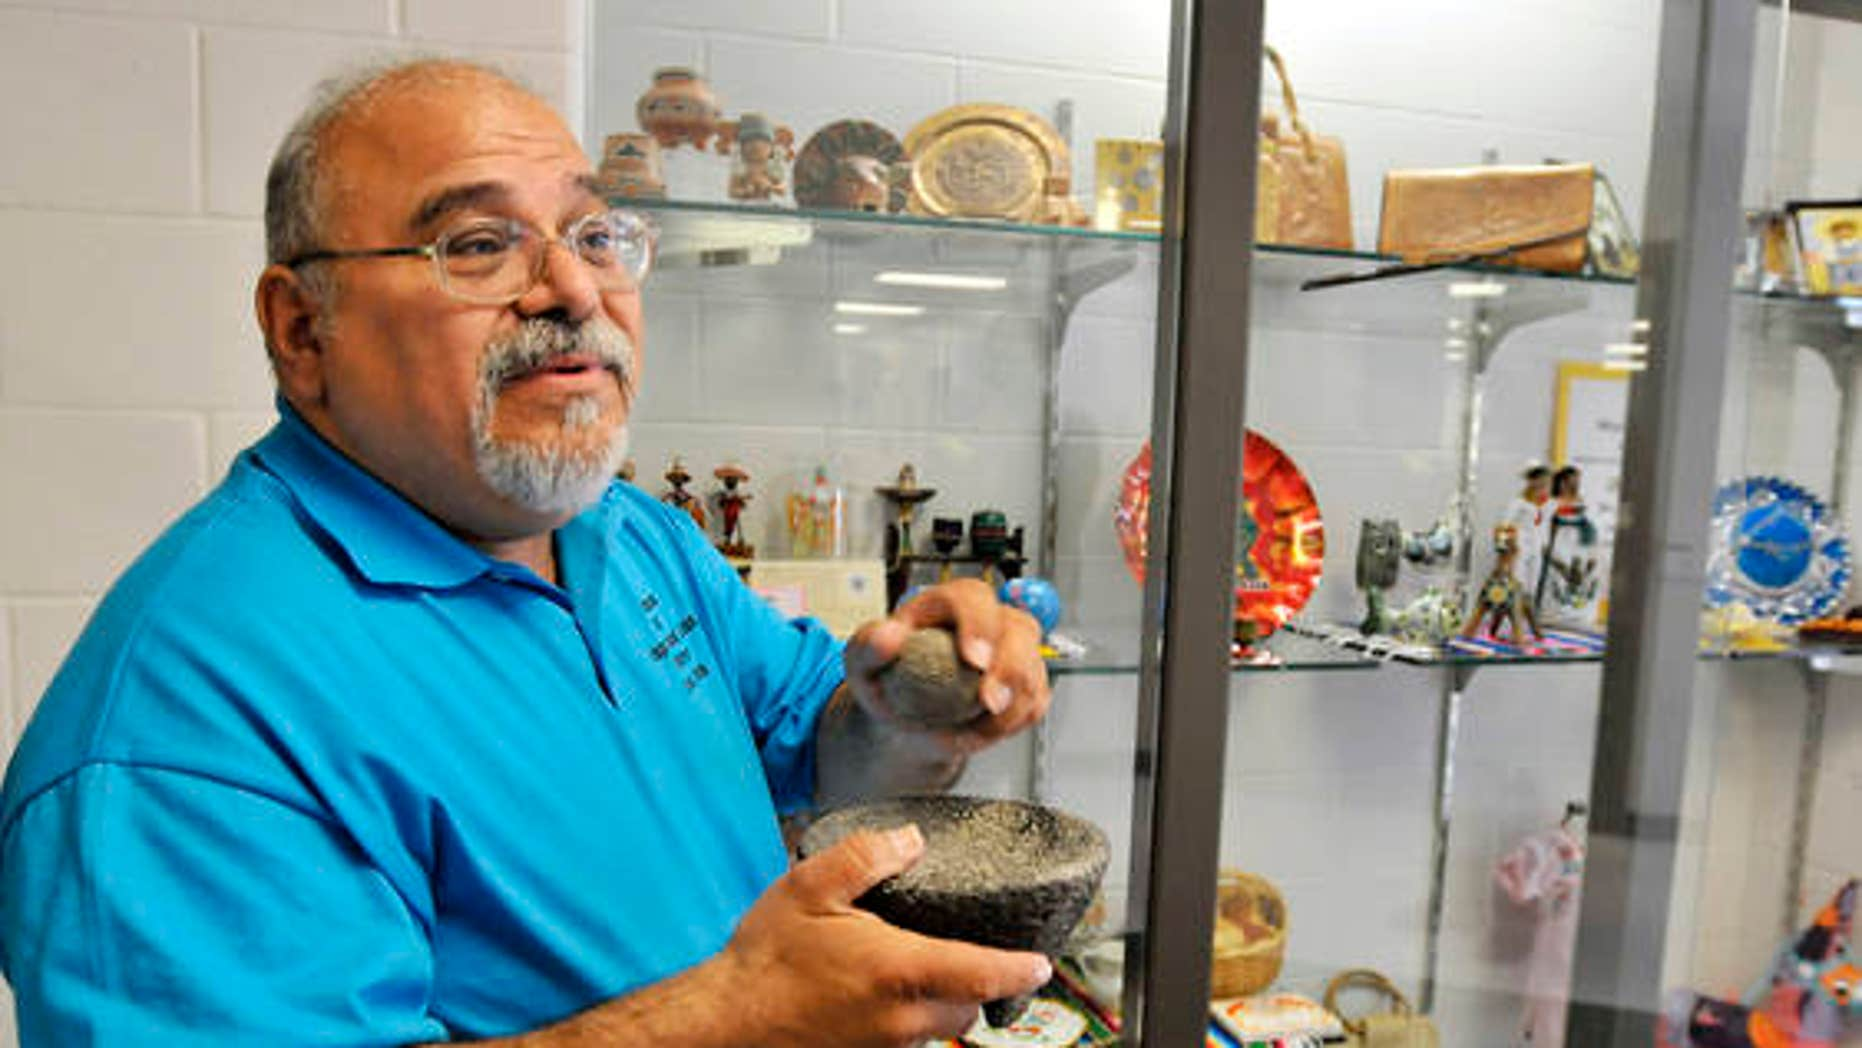 Curator Guillermo Arriaga holds a molcajete, a traditional Mexican version of mortar and pestle carved out of volcanic rock, one of the artifacts on display by the Museum of Hispanic and Latino Cultures at Southview Middle School in Lorain, Ohio.